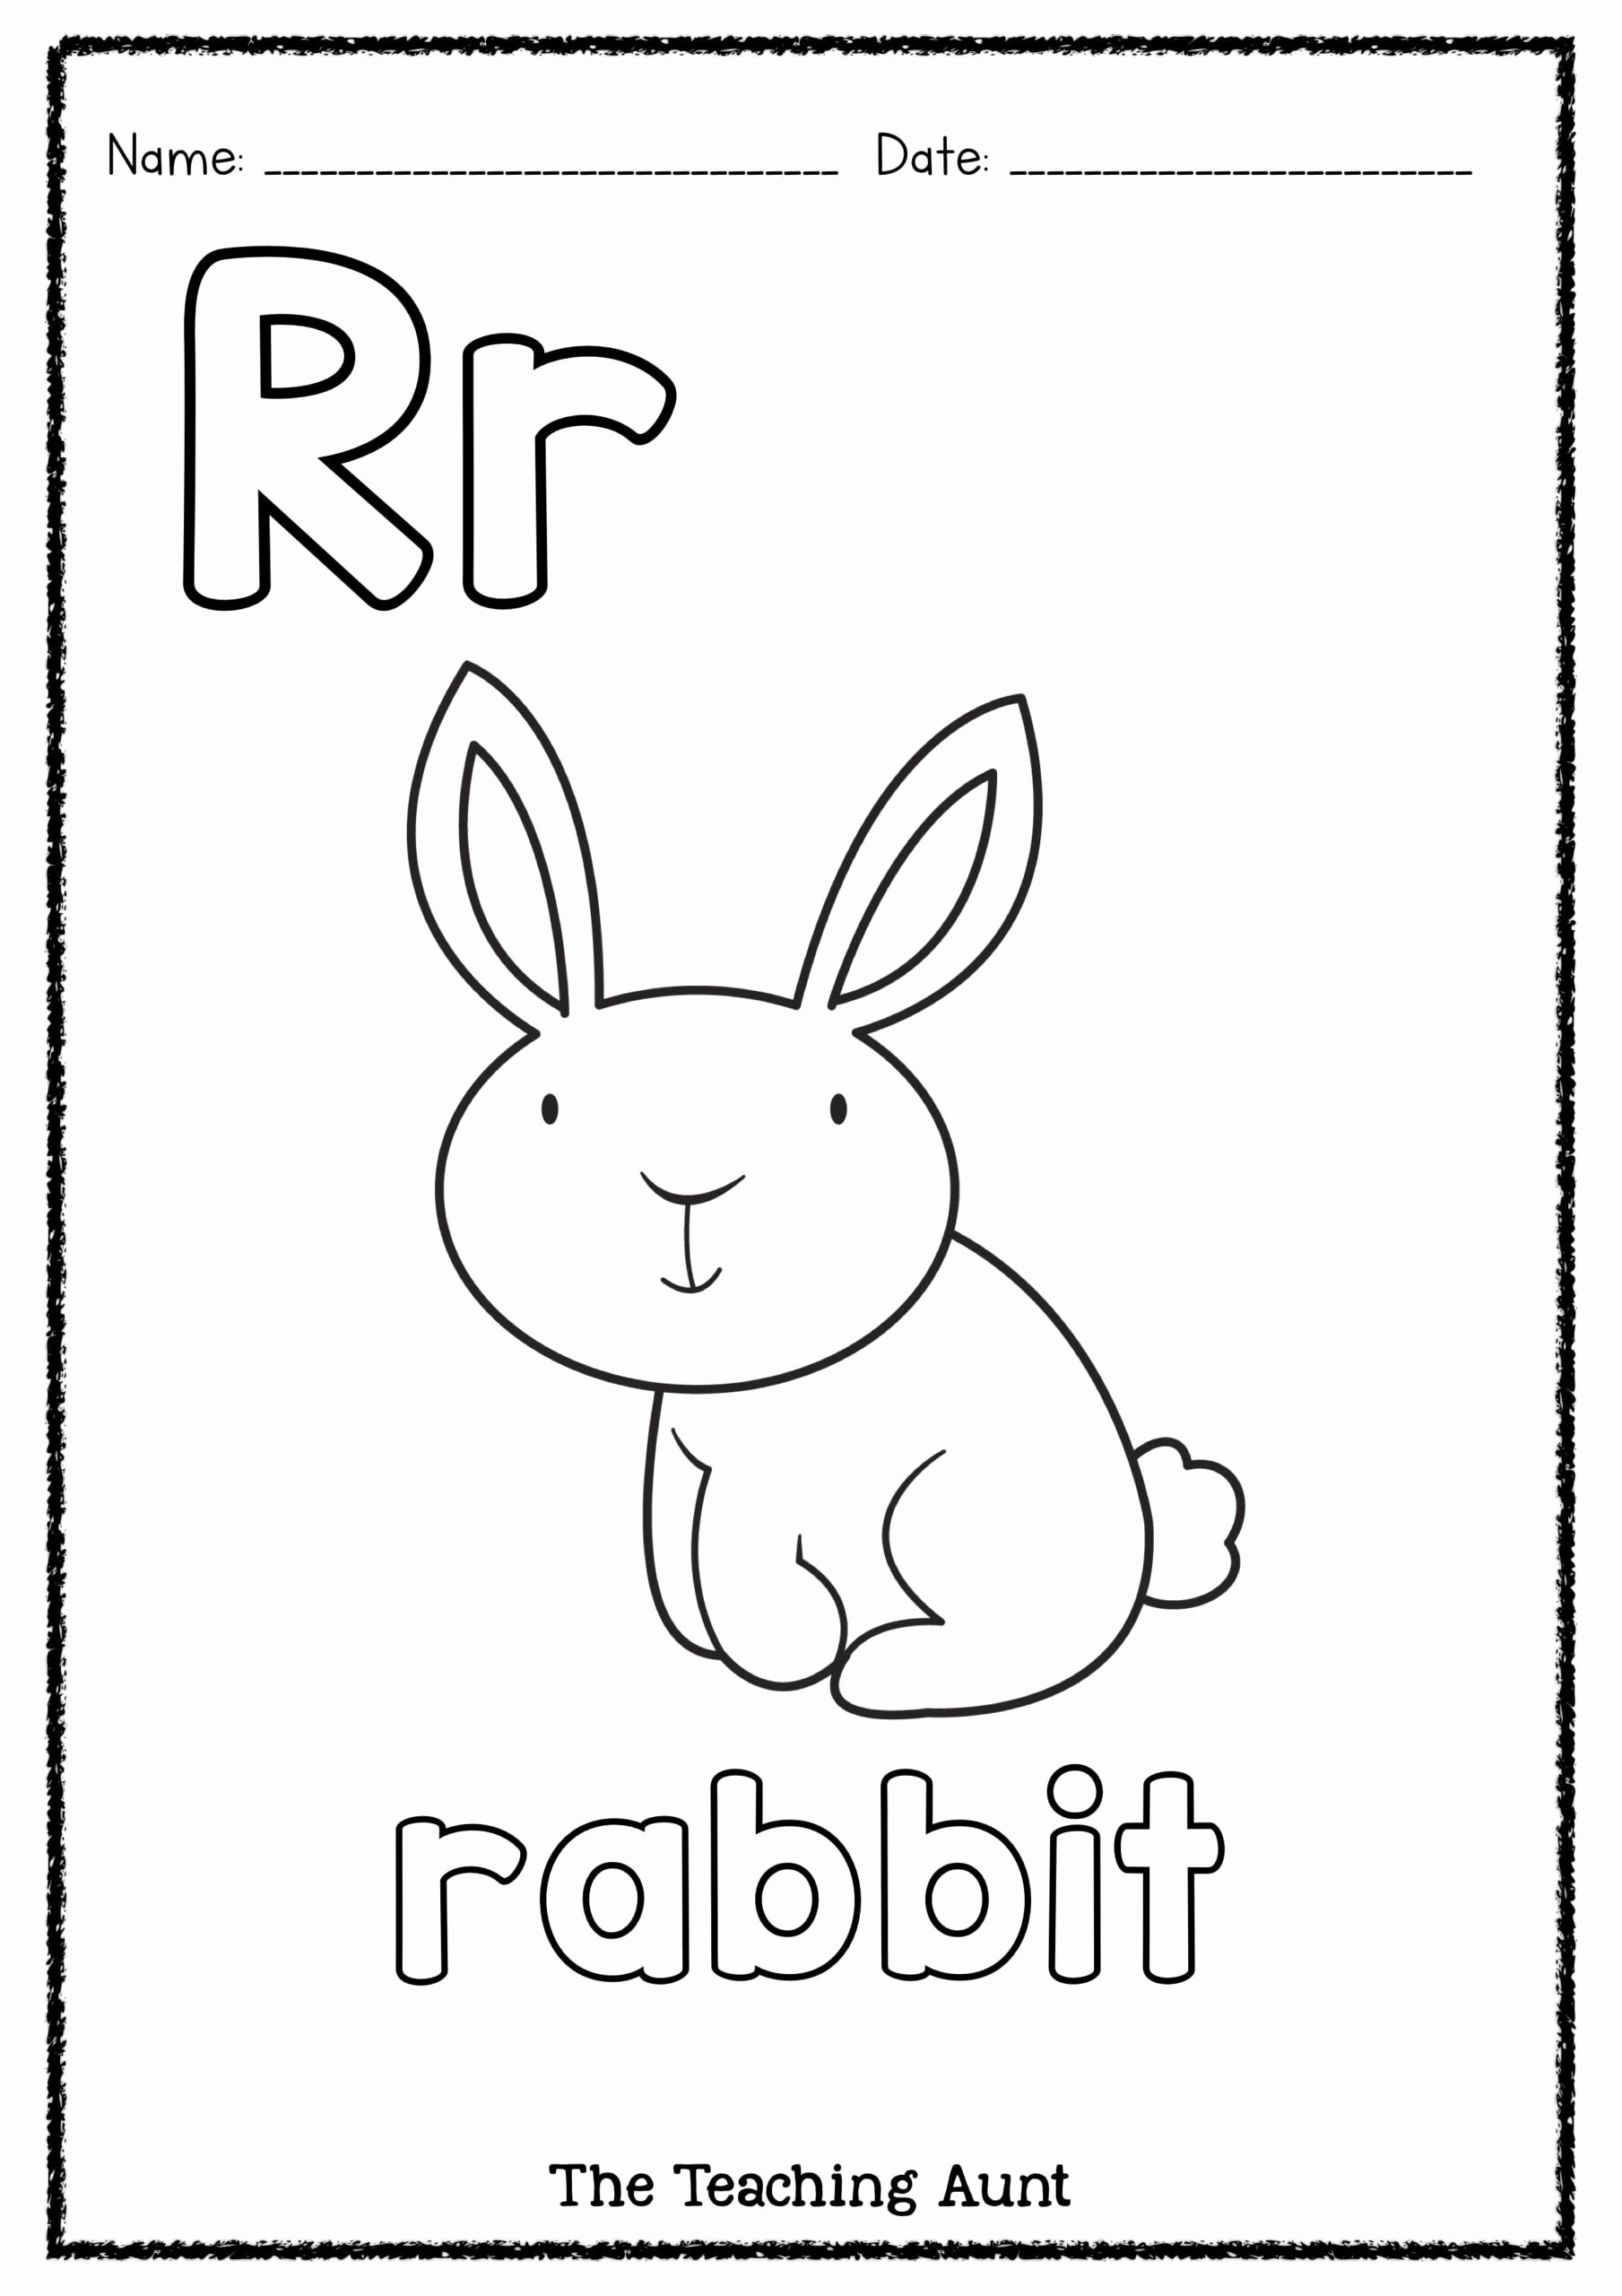 Rabbit Printable Worksheets for Preschoolers Printable is for Rabbit Art and Craft Colors Preschool Preschool